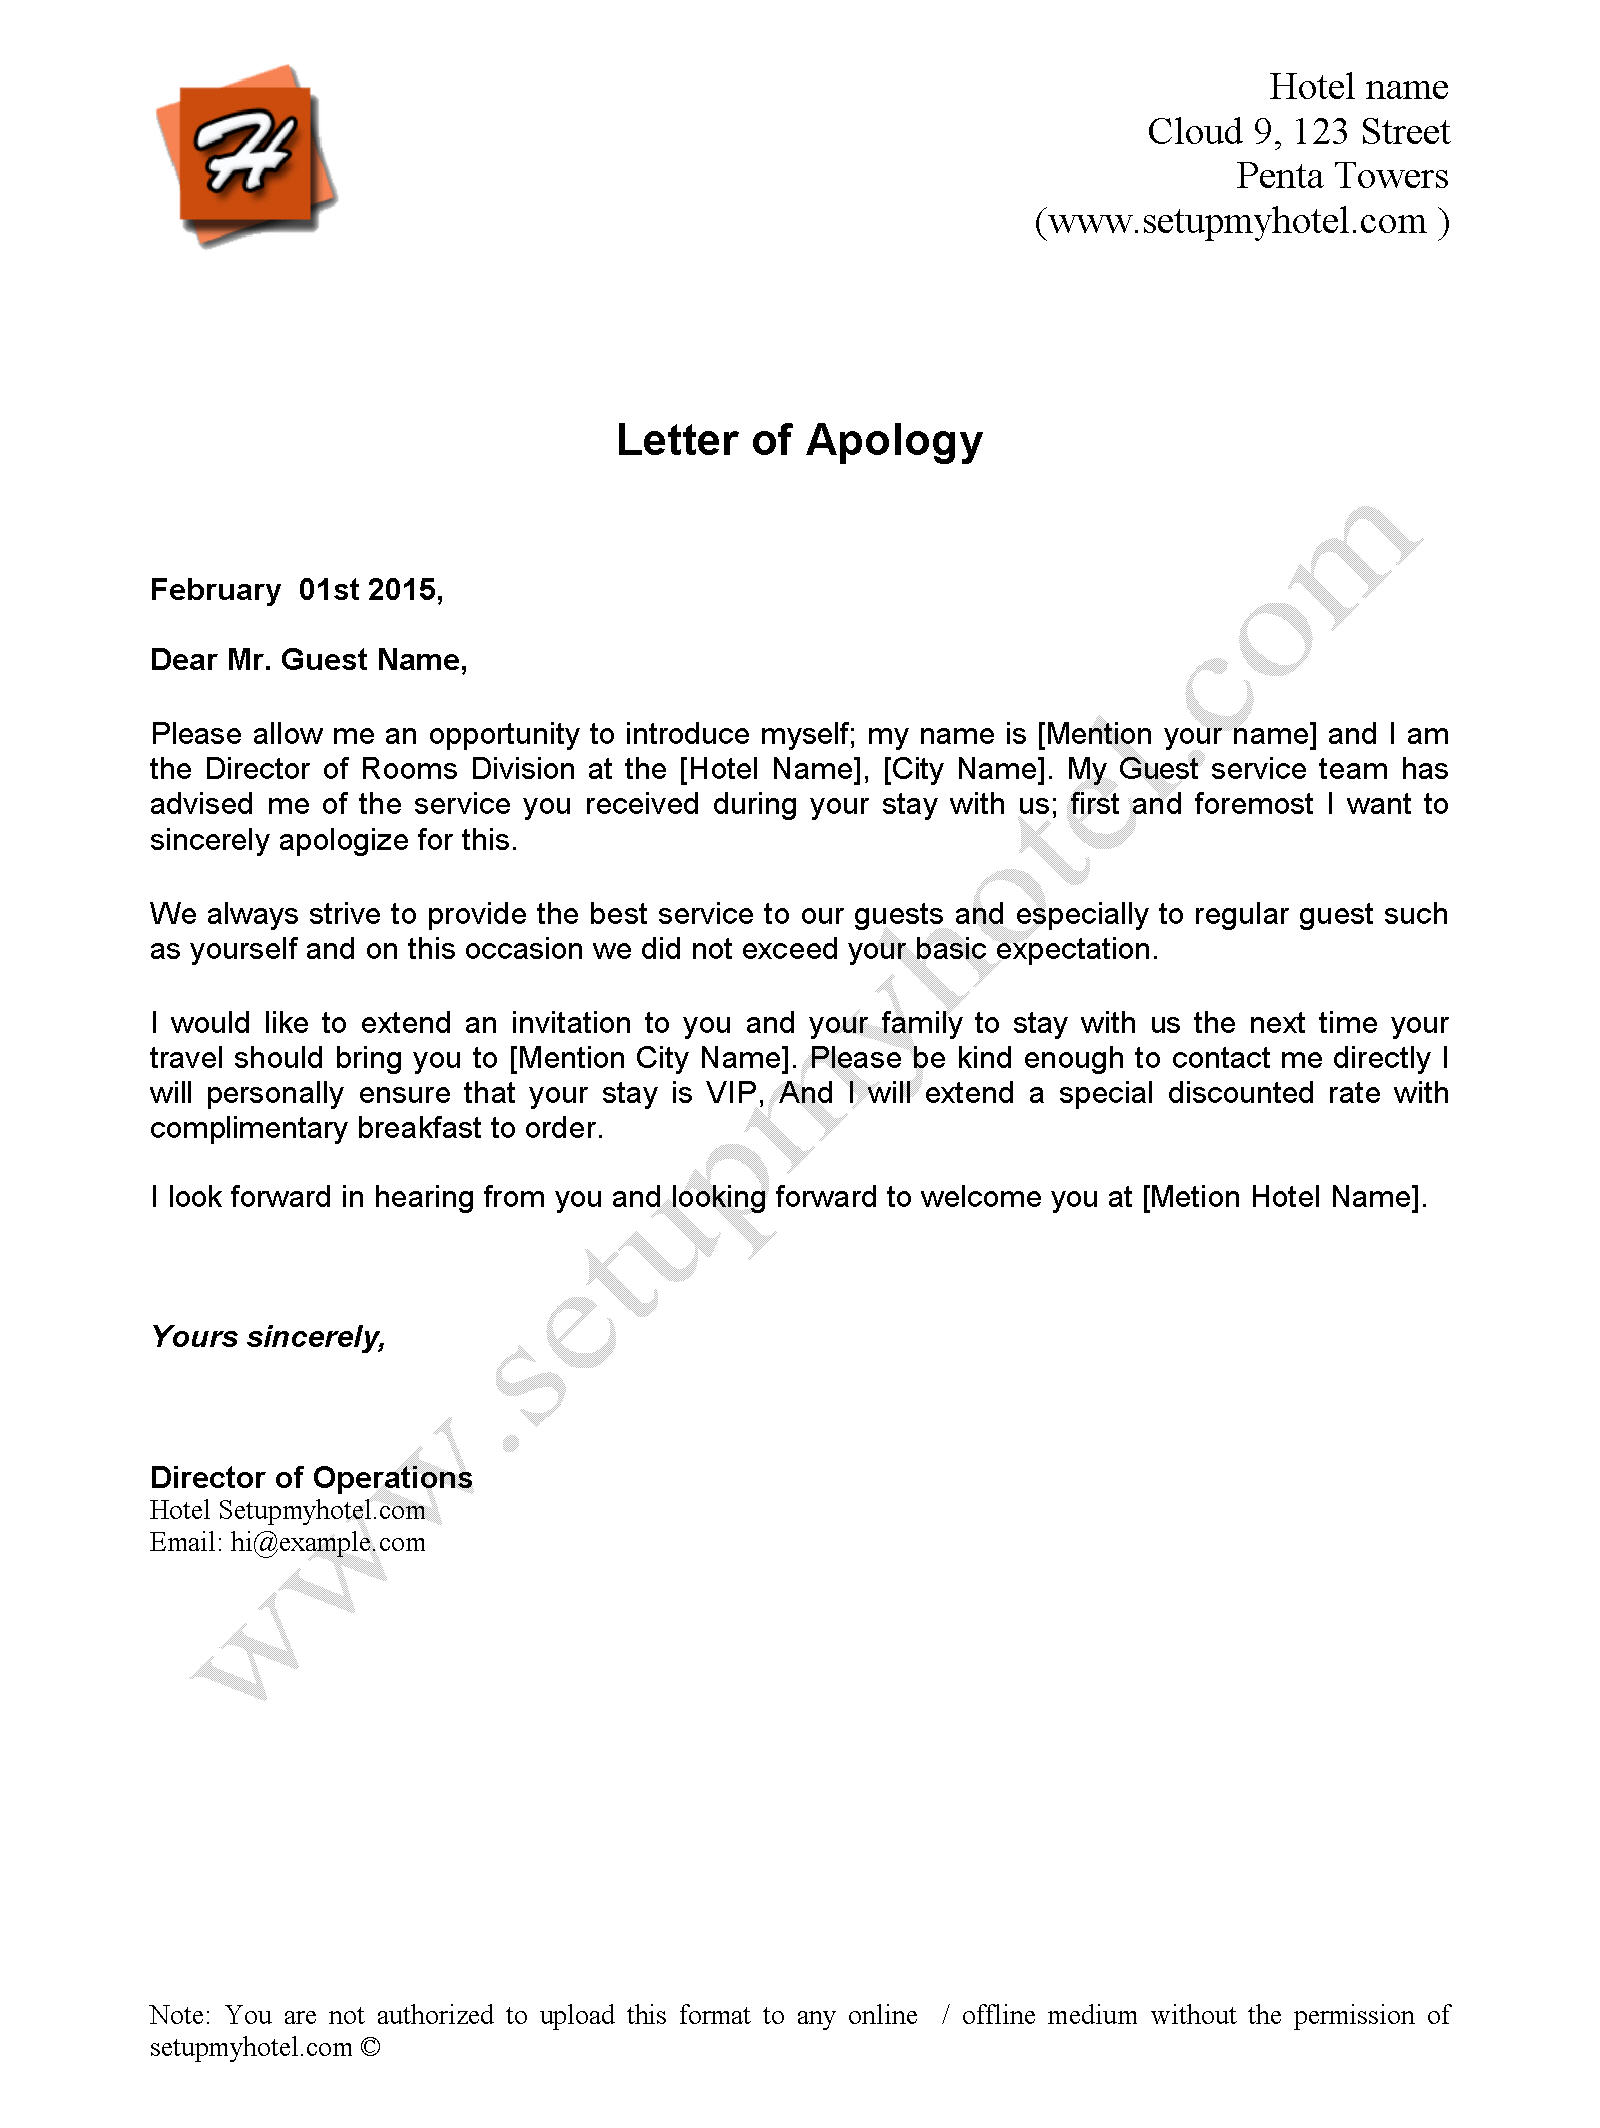 Sincere Apology Letter Airline Apology Letter Apology Letter Doc Doc